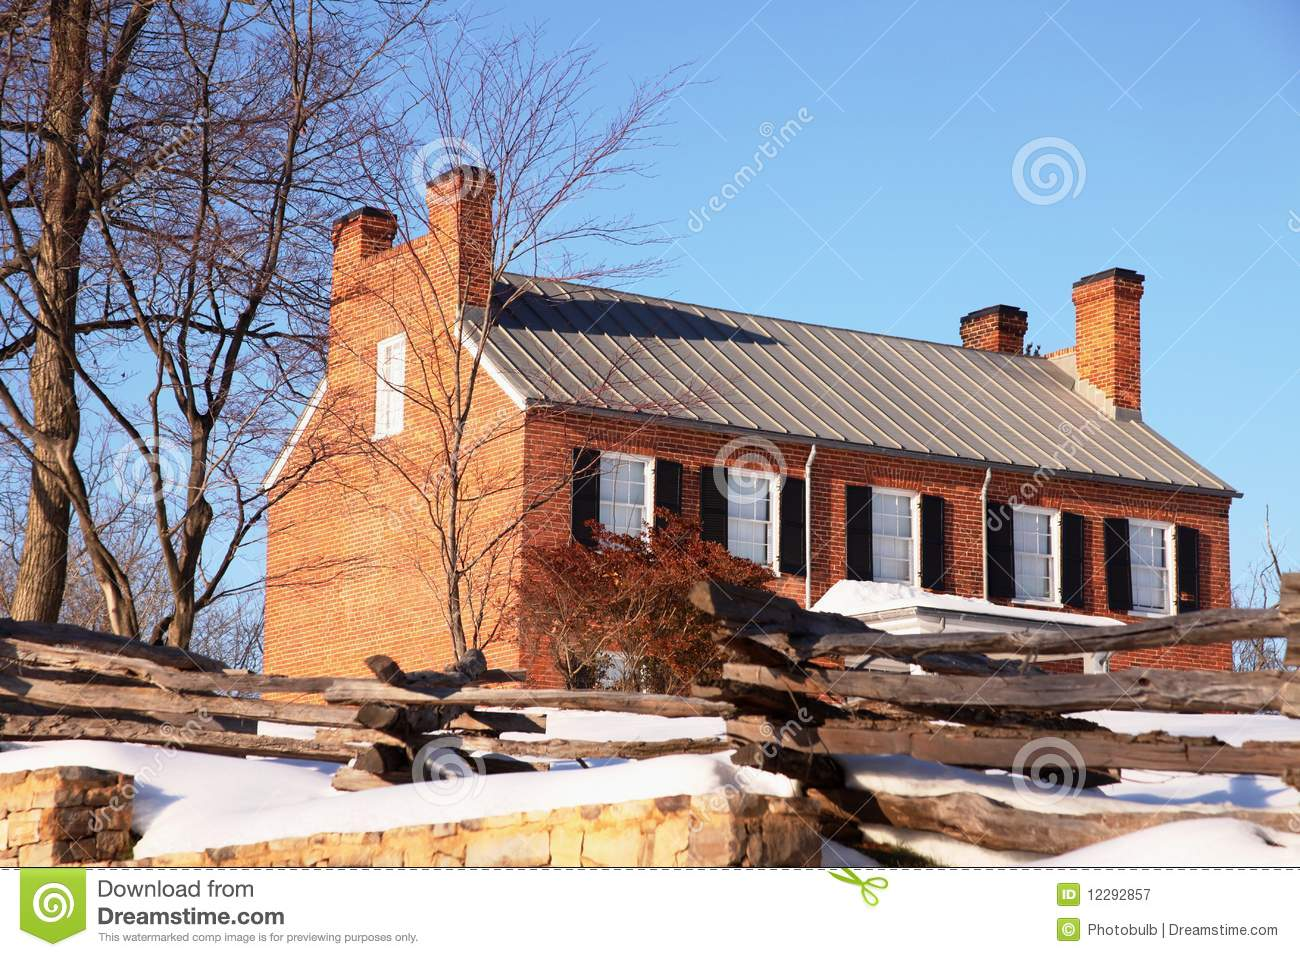 Folk Art Reproduction Saltbox likewise 269512358925619327 further Royalty Free Stock Photography Historic Blenheim House Fairfax Virginia Image12292857 further House Built Inside A Mountain In Swiss Alps in addition KraftMaid Maple Cabi ry In Praline Traditional Kitchen. on virginia farmhouse architecture